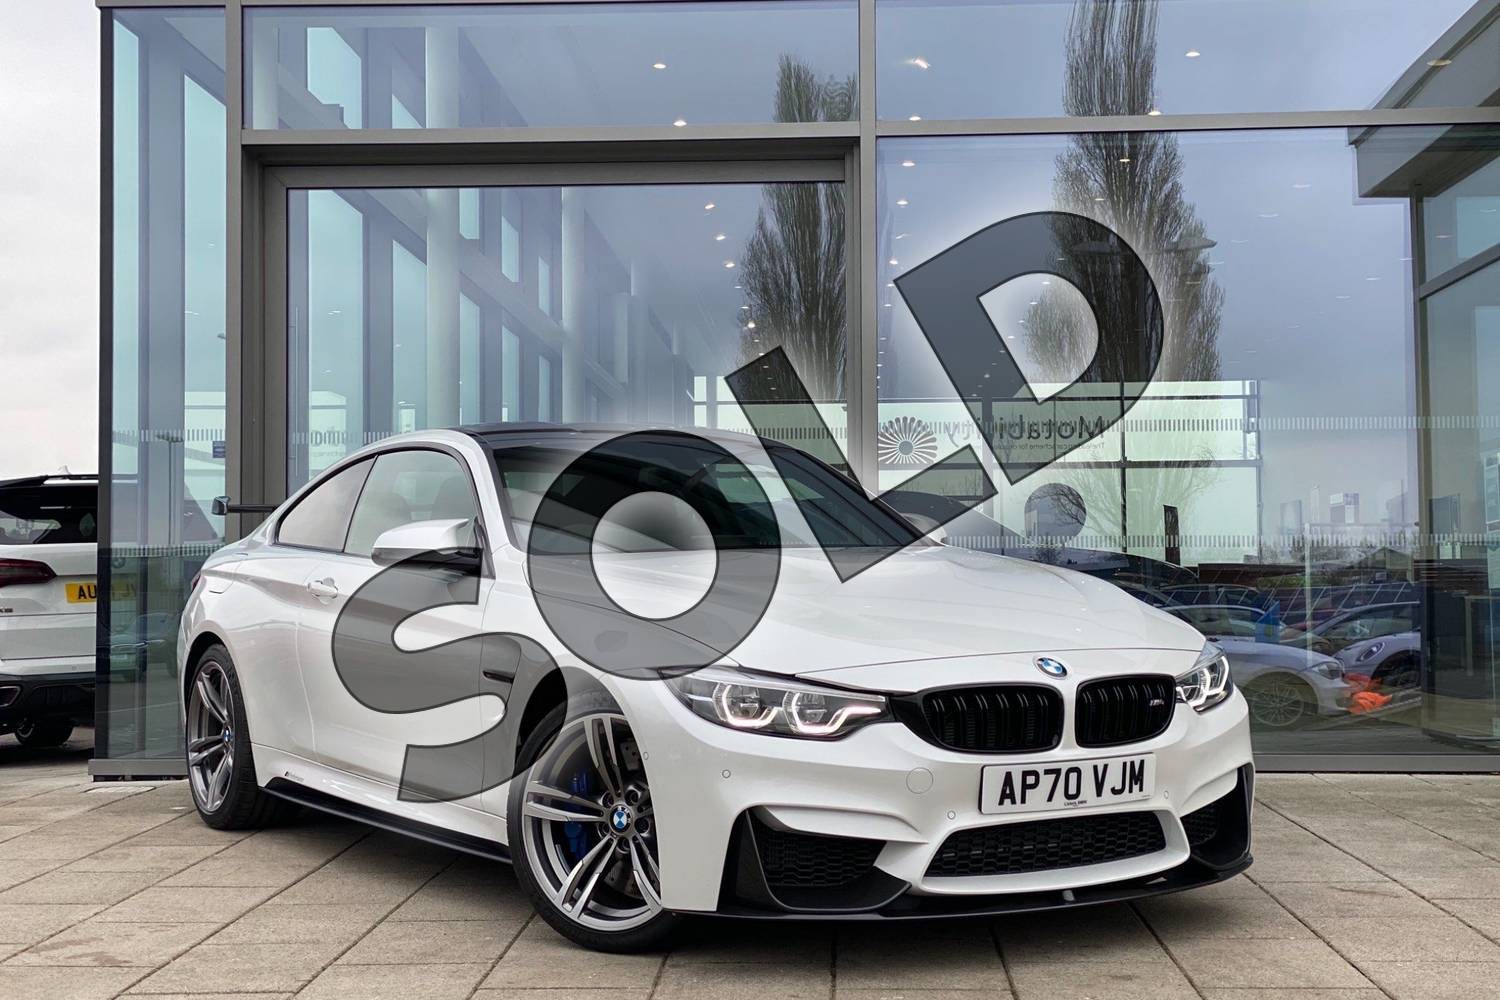 2021 BMW M4 Series M4 Coupe in Mineral White at Listers King's Lynn (BMW)